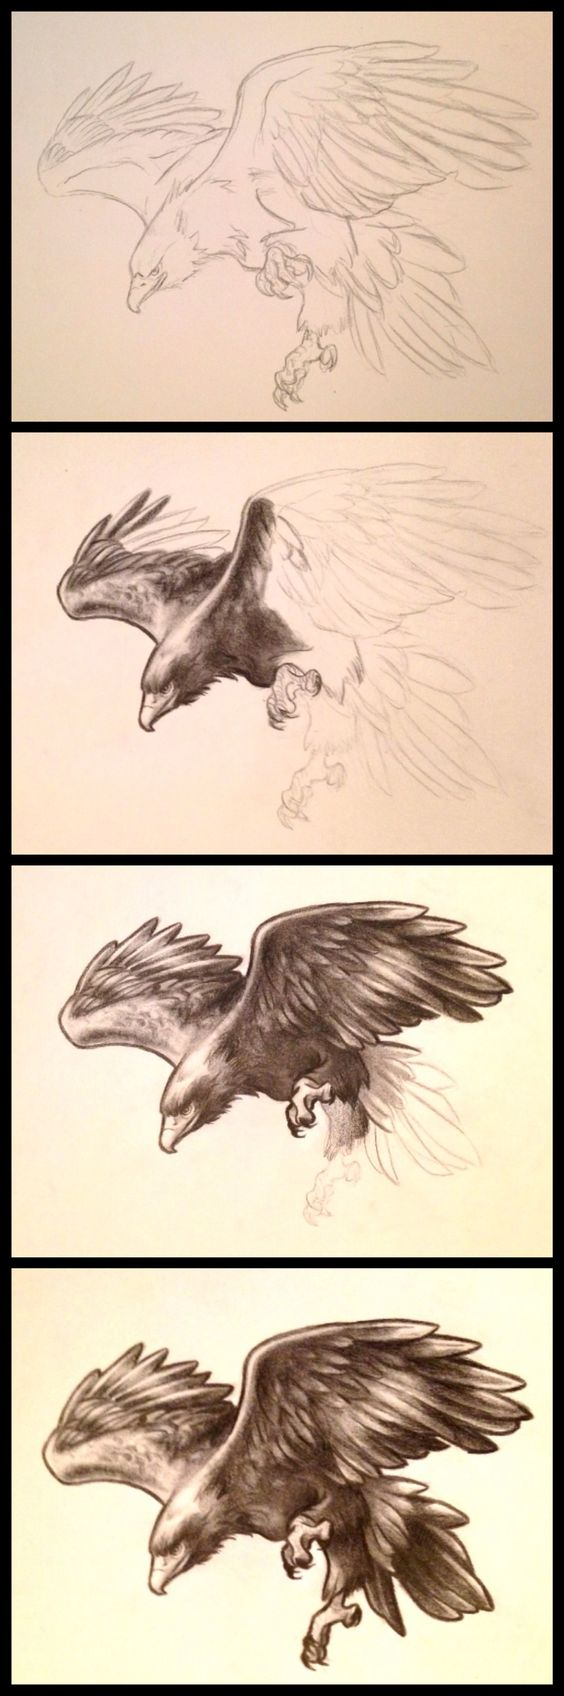 Wedge Tailed Eagle I sketched out for a tattoo idea